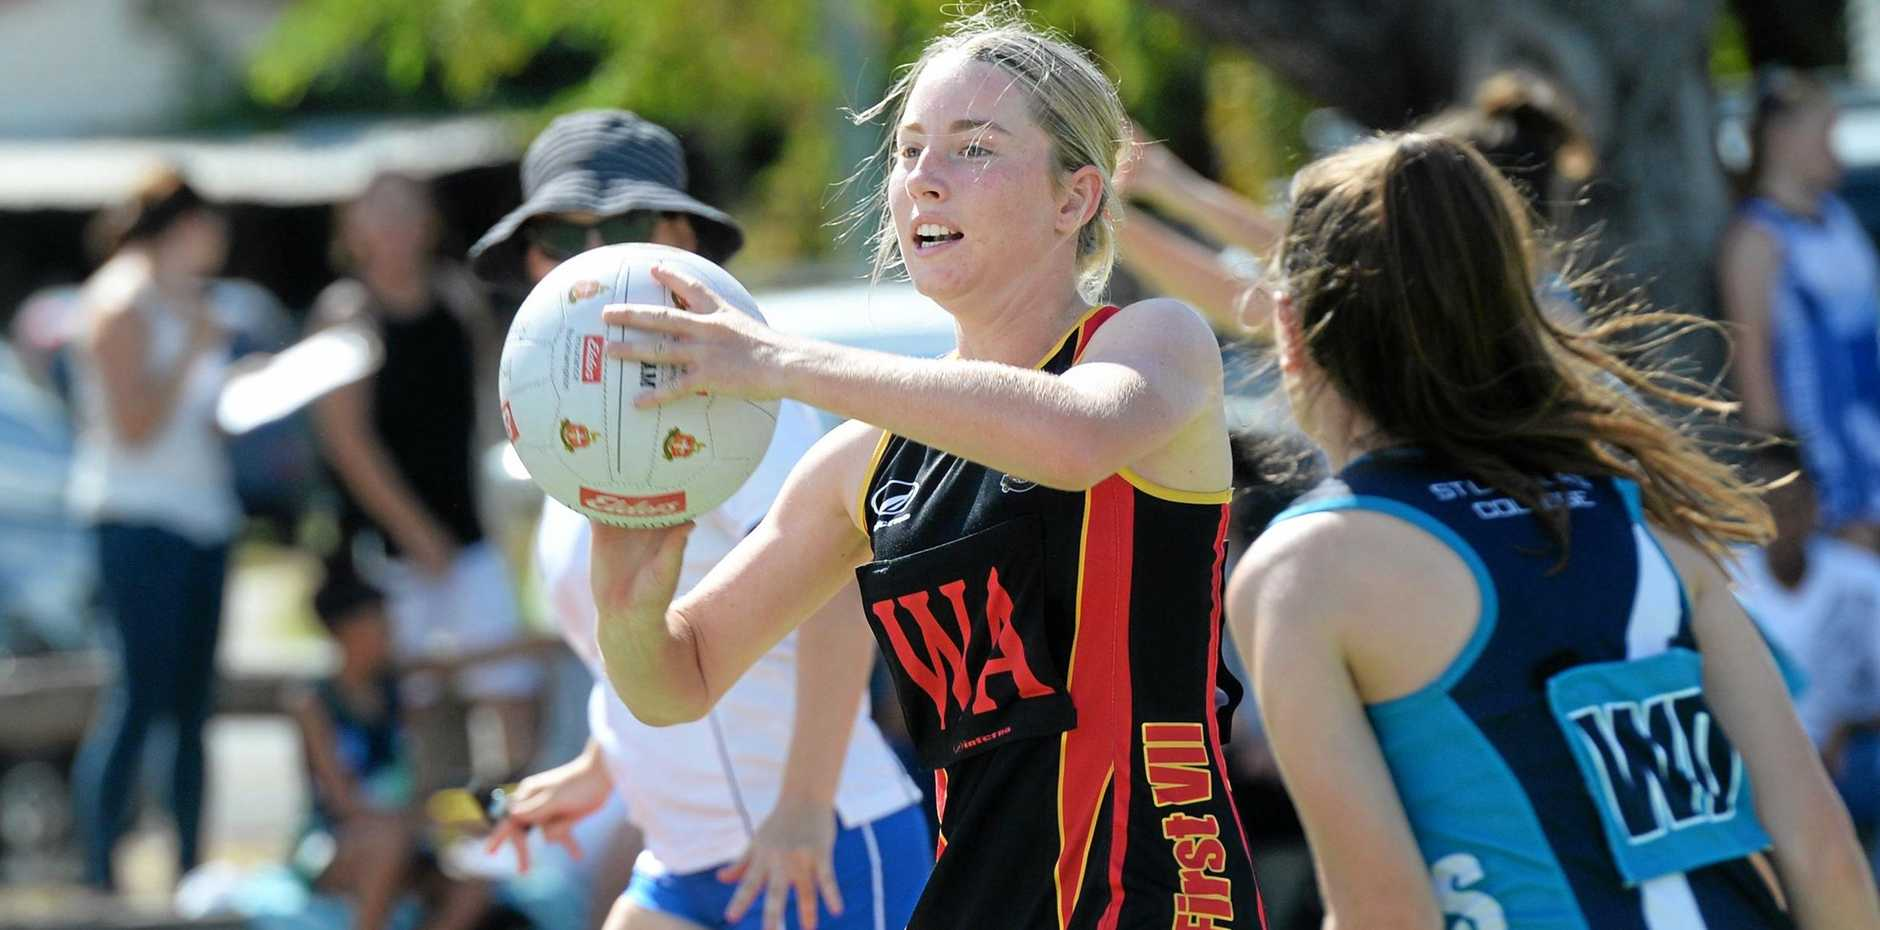 A total of 128 teams will take part in the annual Sullivan's Carnival at Jardine Park in Rockhampton this weekend.